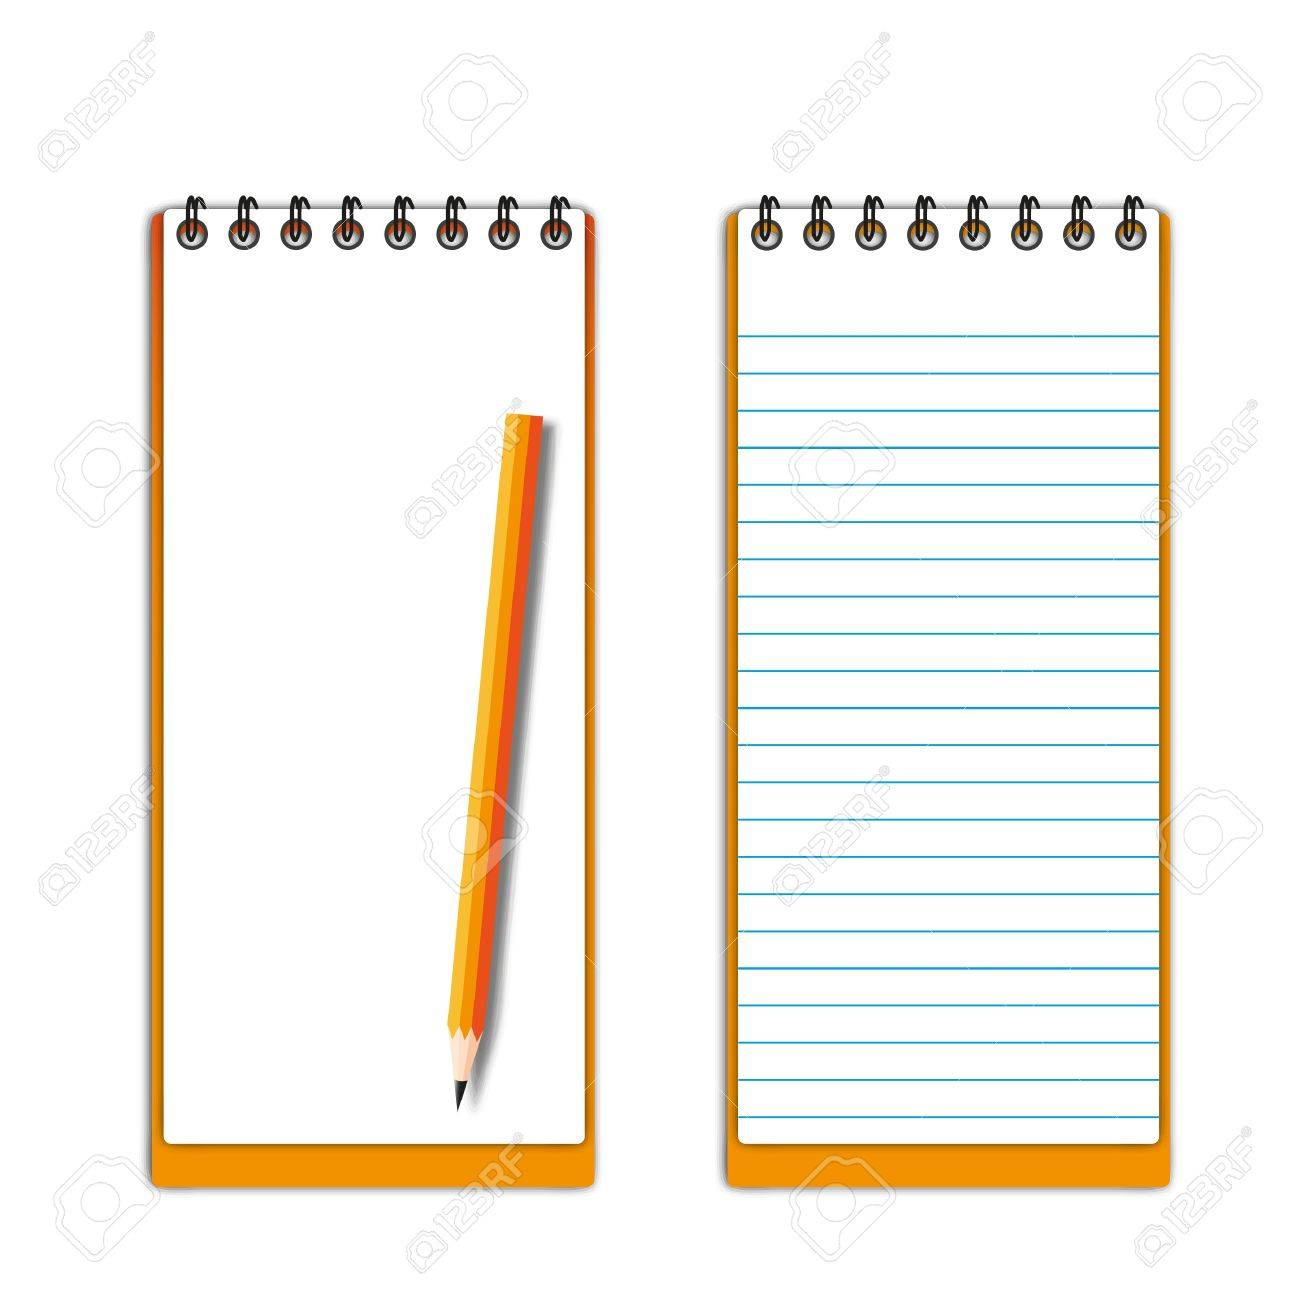 New pocketbook blank page with pencil. Stock Vector - 11932991